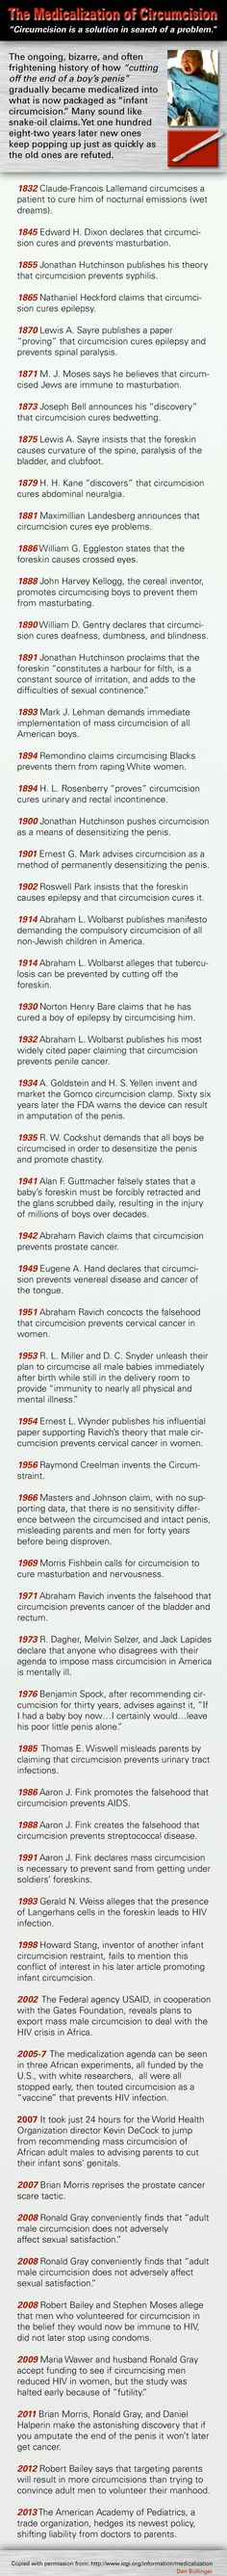 A great timeline that shows the anti-foreskin crowd's hidden agenda.